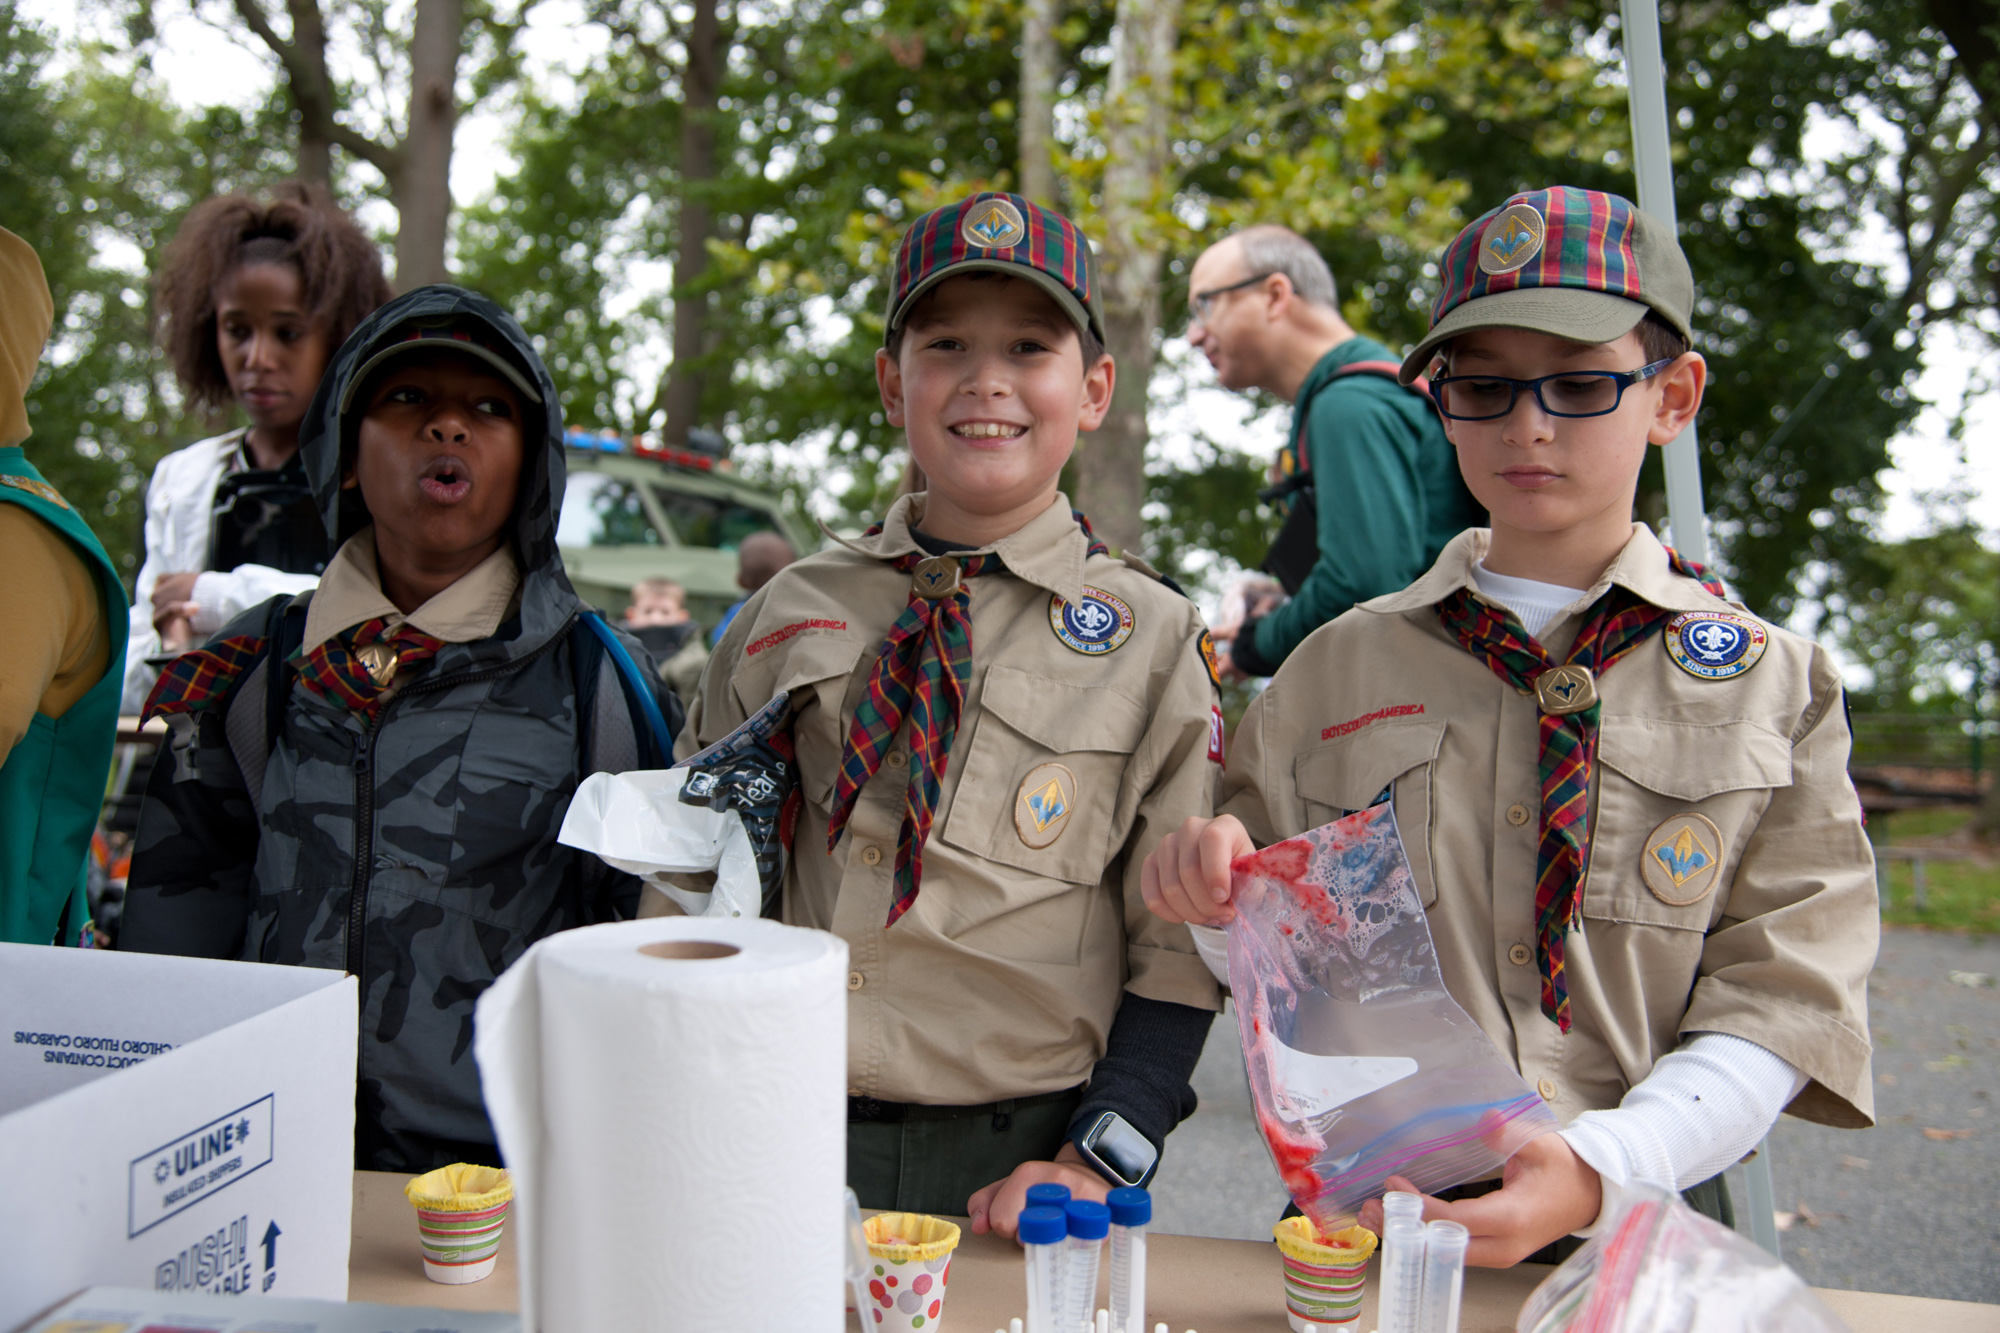 Boy Scouts from Maryland and surrounding states participate in the October 2016 STEM in Scouting Day at Aberdeen Proving Ground, the largest scouting STEM event of its kind in the nation held on a military installation. Even if event participants don't go on to careers in STEM or with the military, AEOP's outreach helps build literacy in science and math, where U.S. students trail their peers in other countries. (Photo by Tom Faulkner, RDECOM)